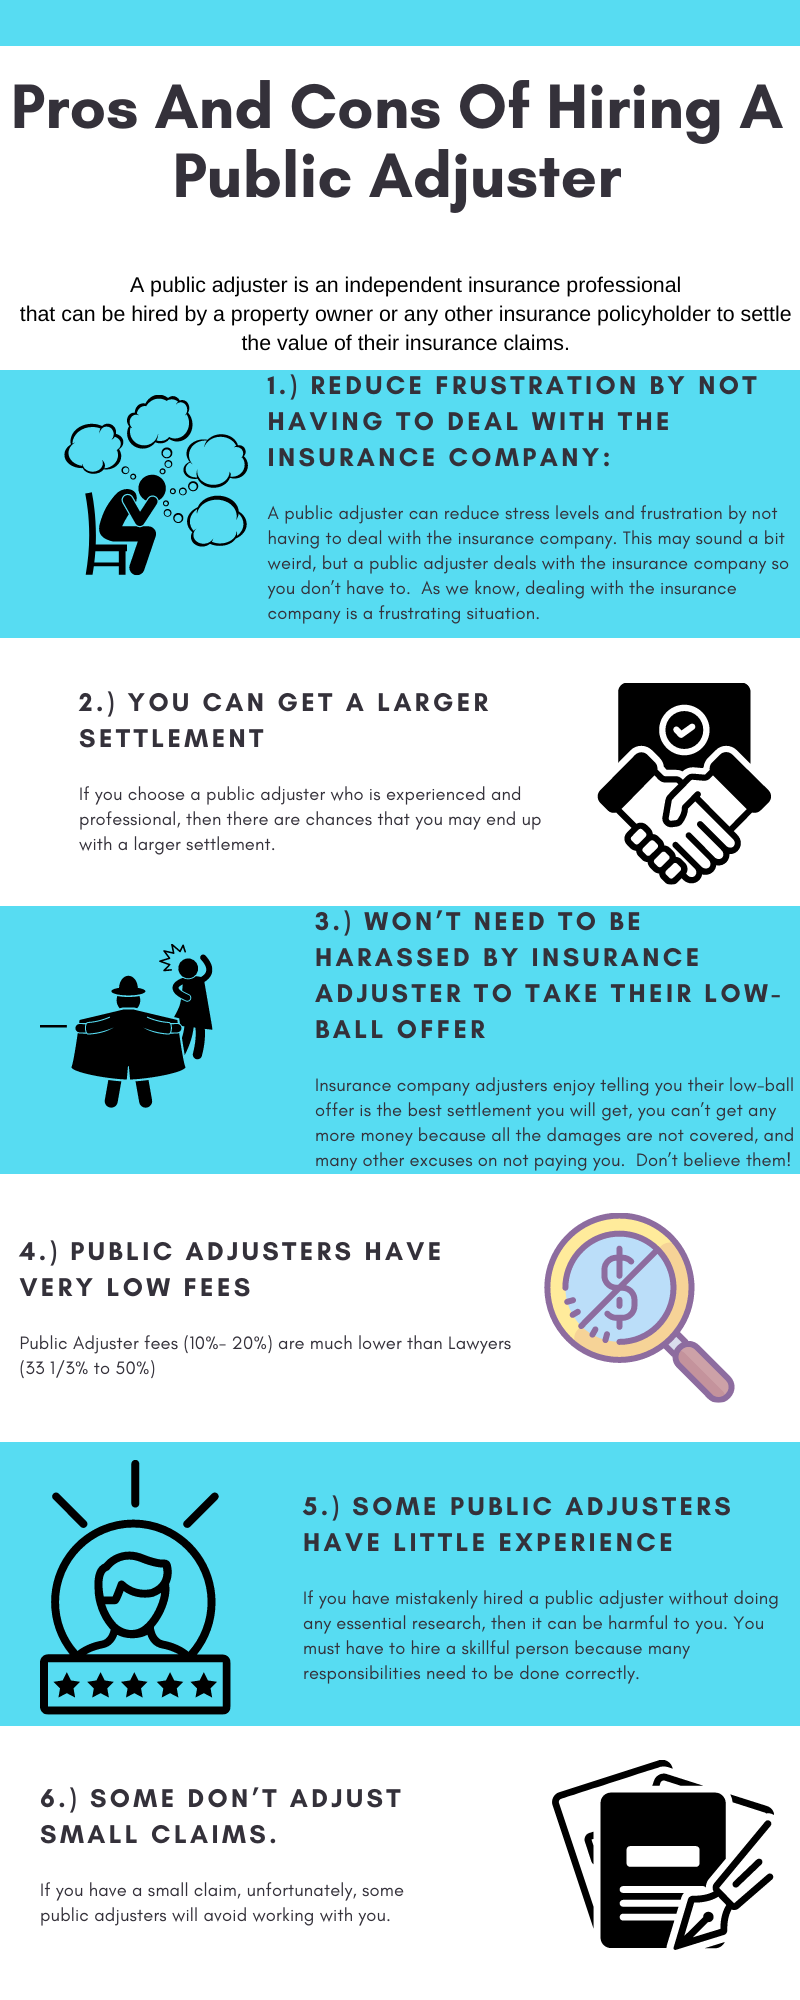 Pros And Cons Of Hiring A Public Adjuster